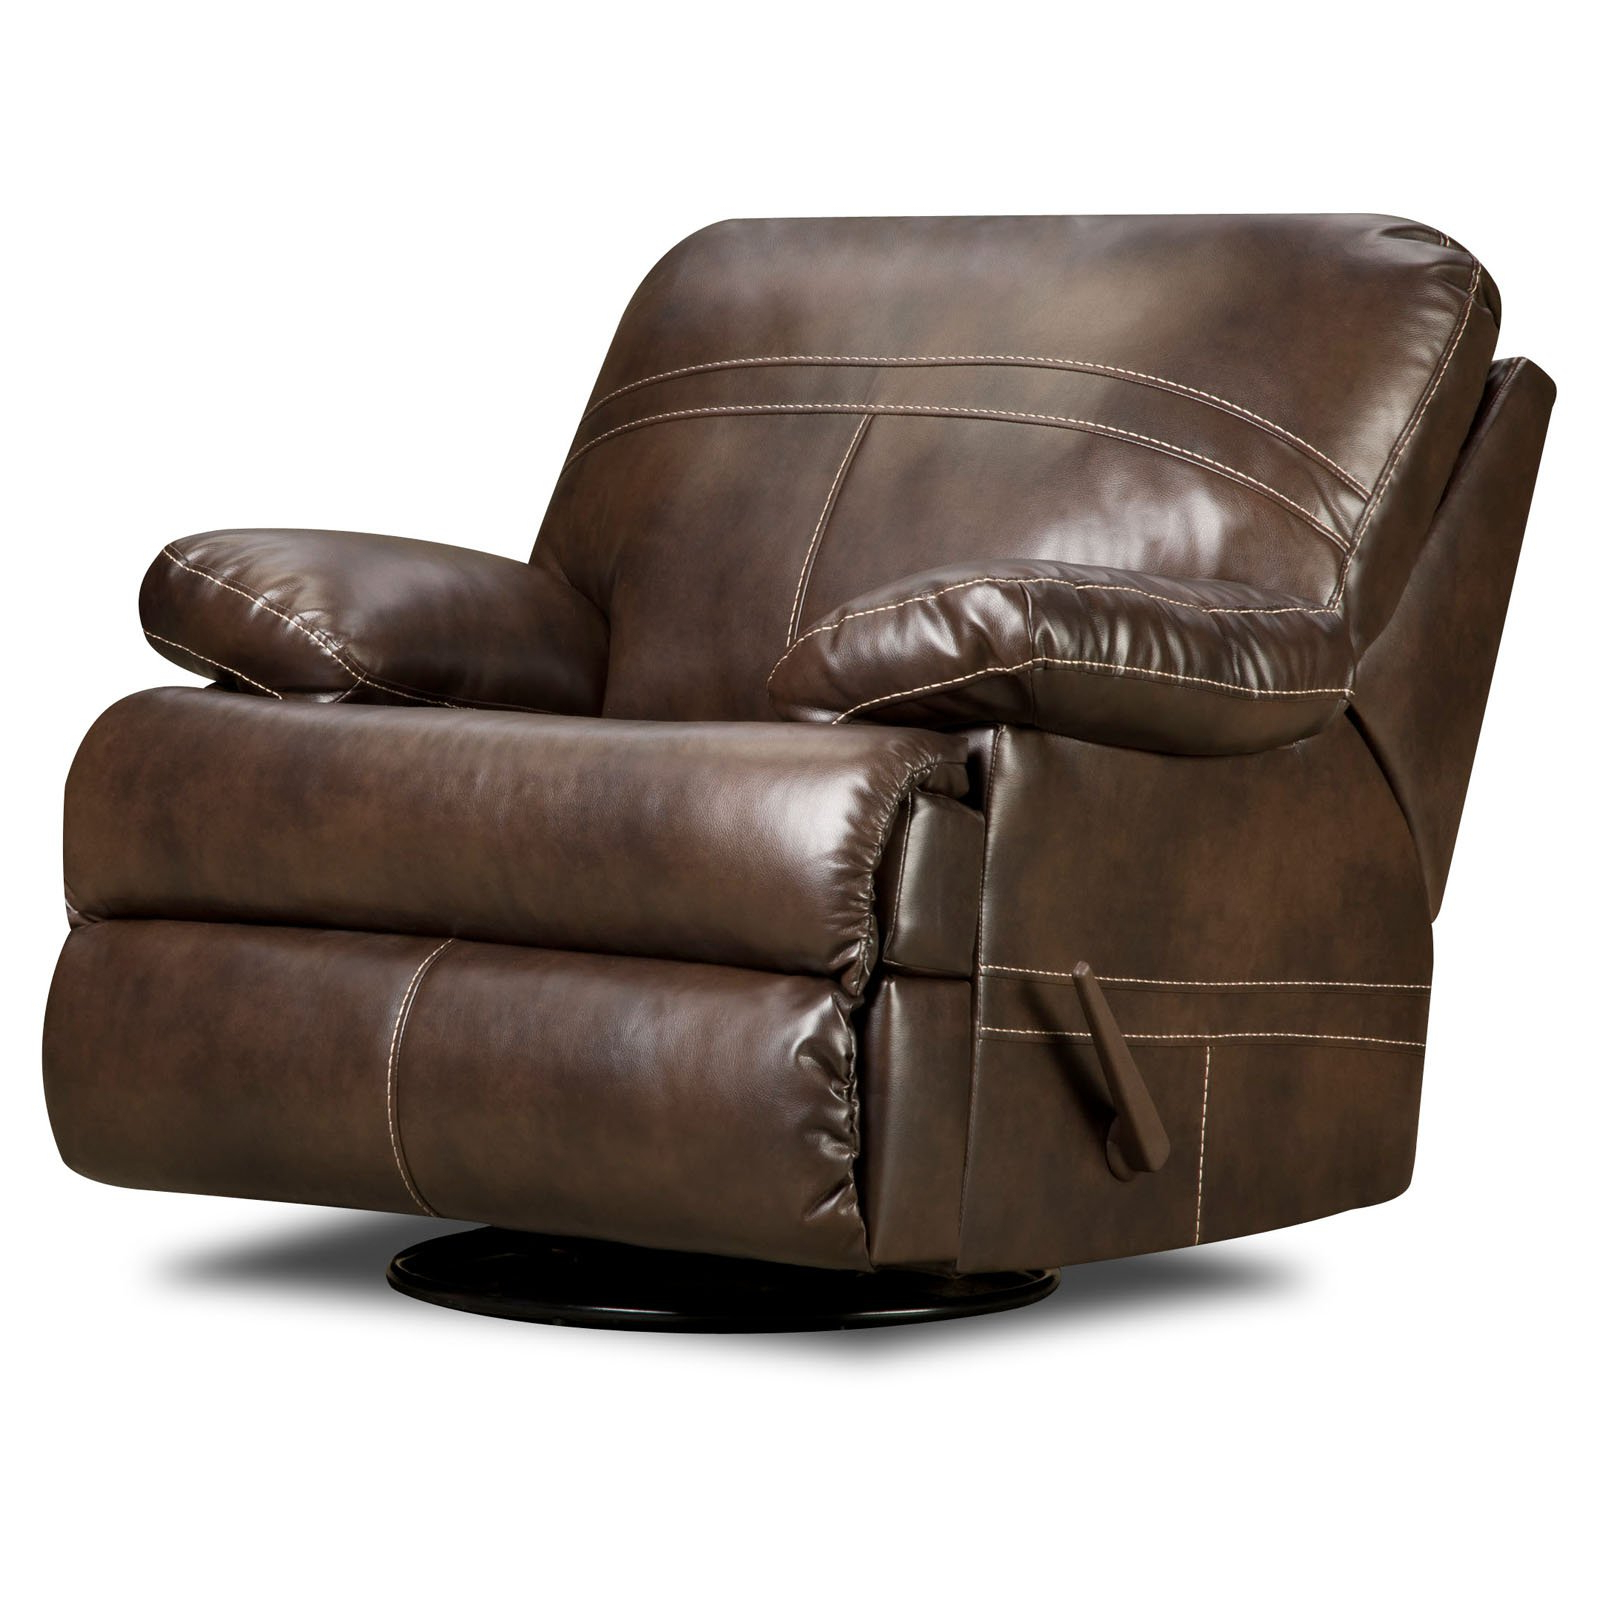 Rogan Leather Cafe Latte Swivel Glider Recliners Within Preferred Furniture: Surprising Simmons Recliners For Contemporary Living Room (Gallery 8 of 20)